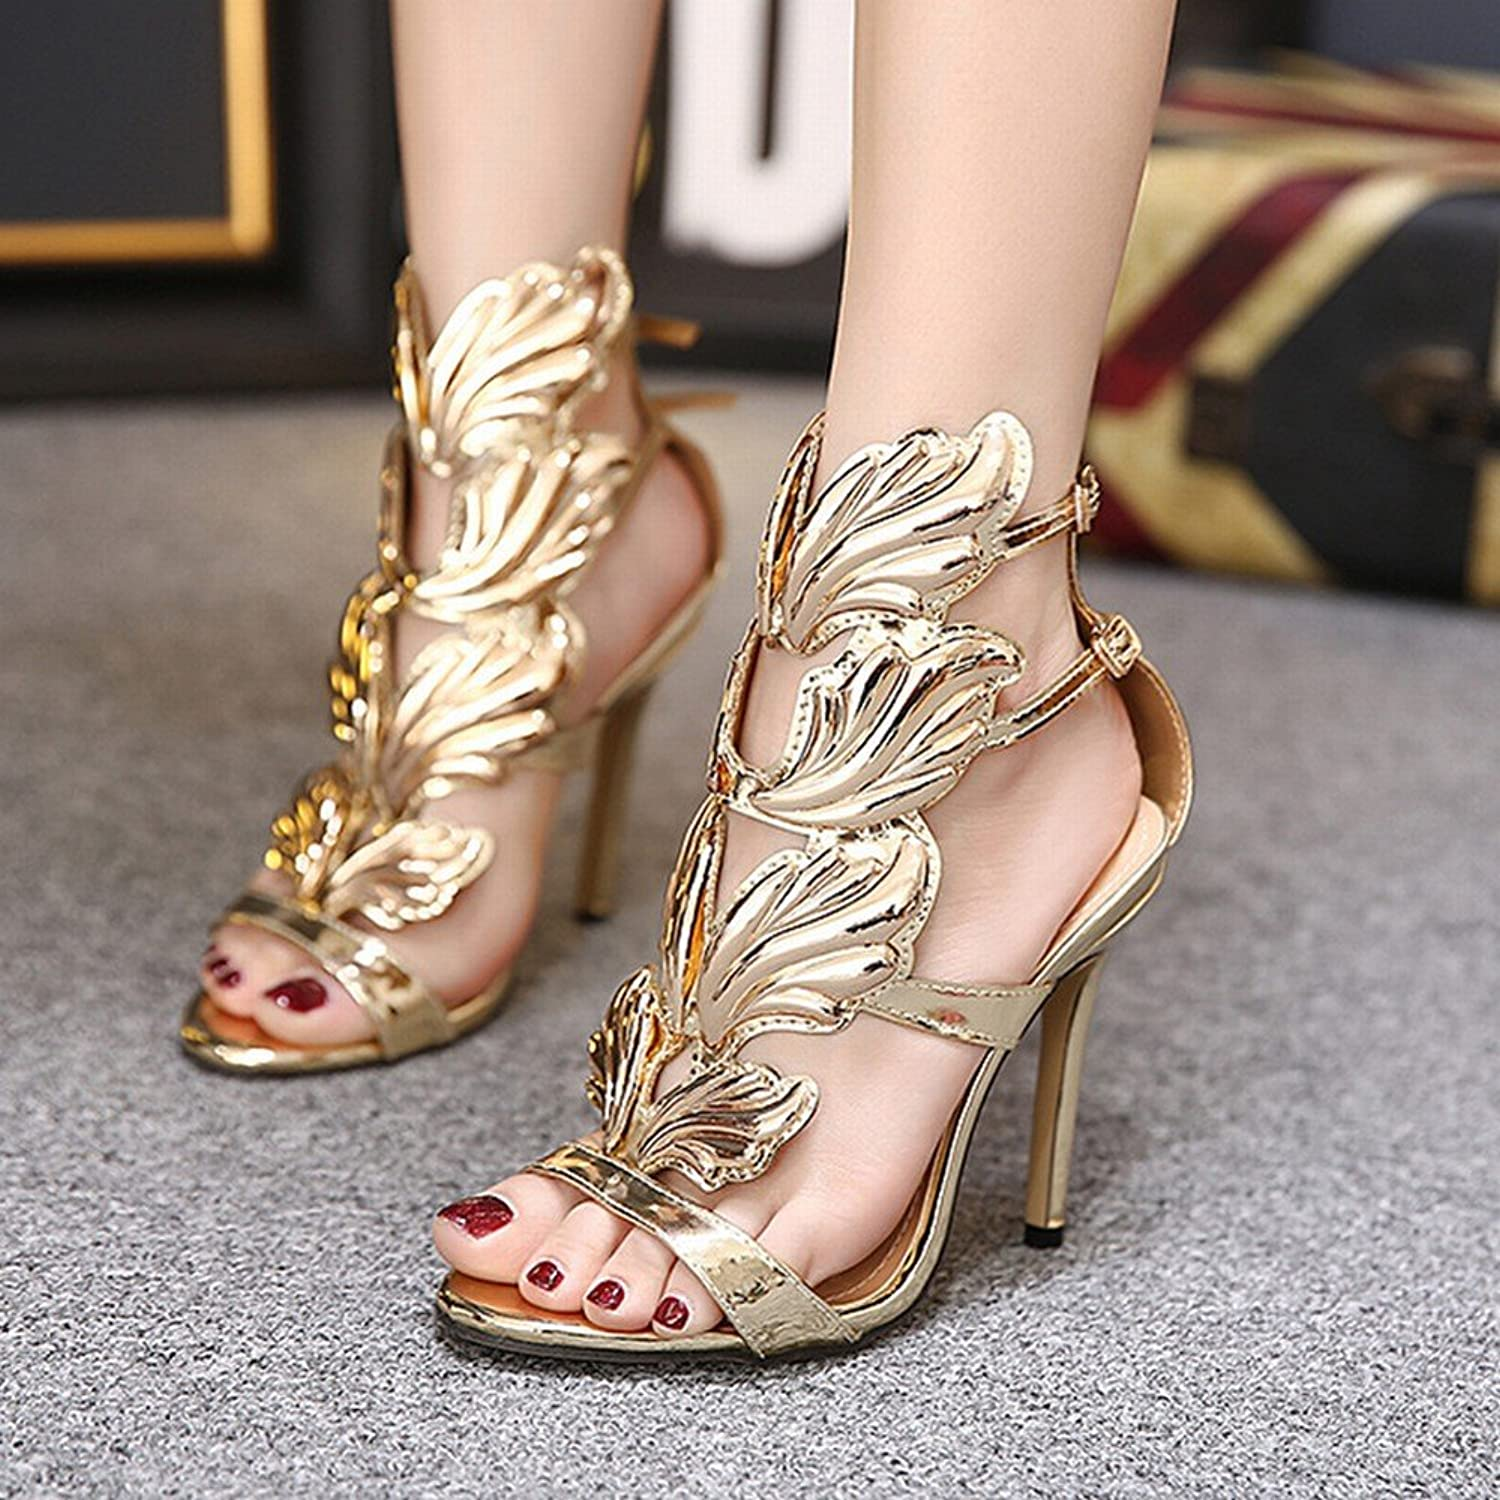 PLLP Metallic High Heel Womens Sandals